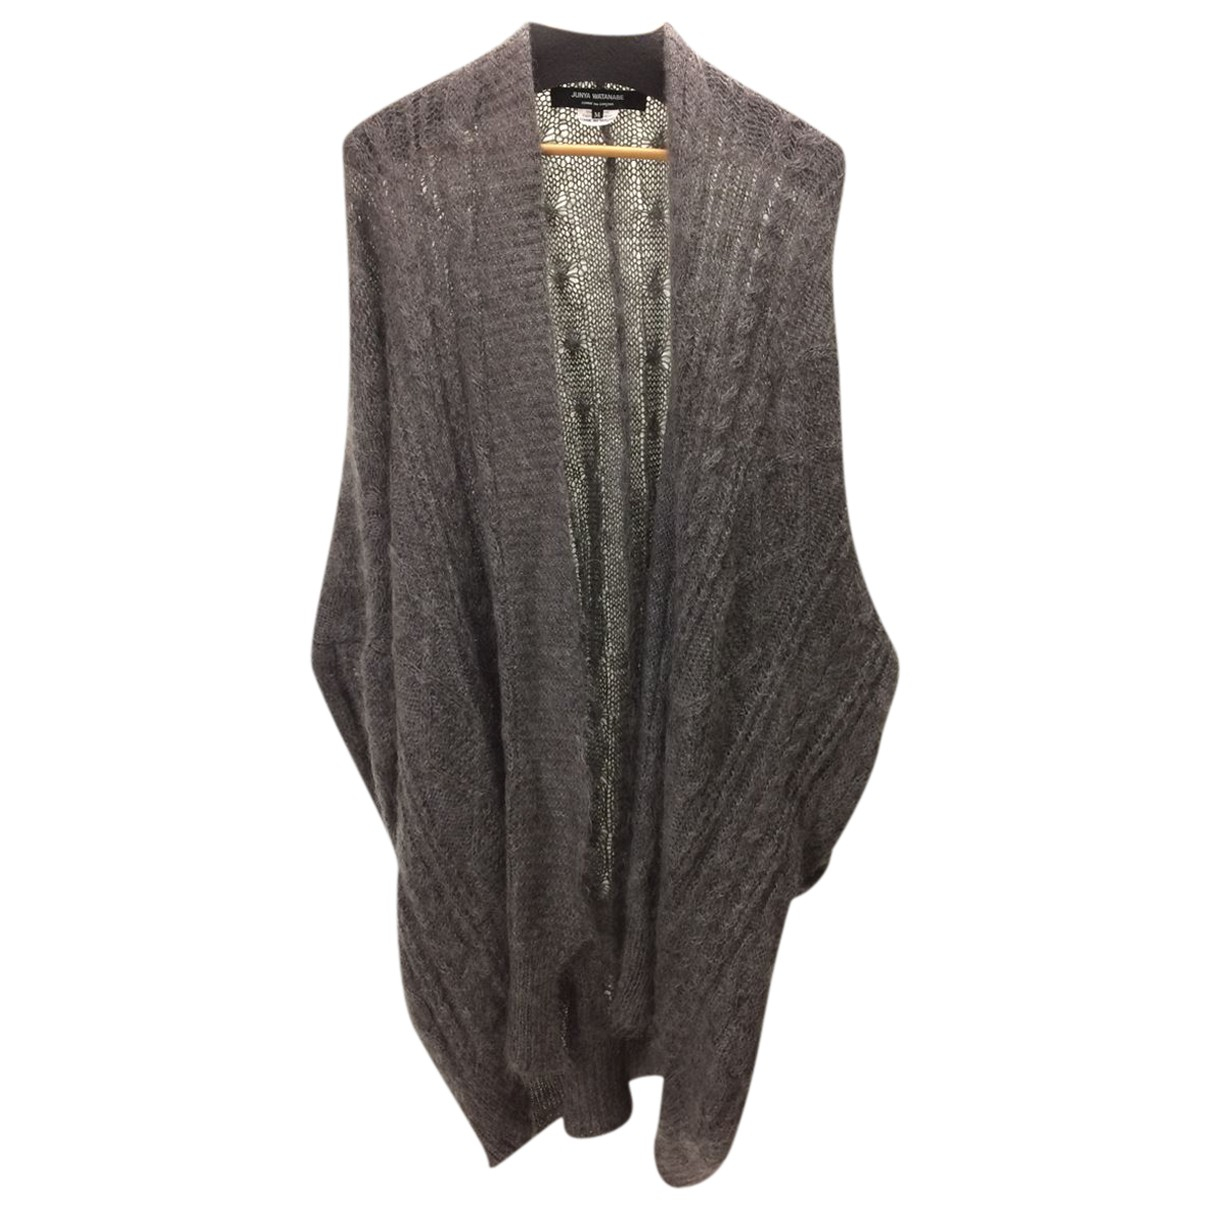 Junya Watanabe N Grey Wool Knitwear for Women M International